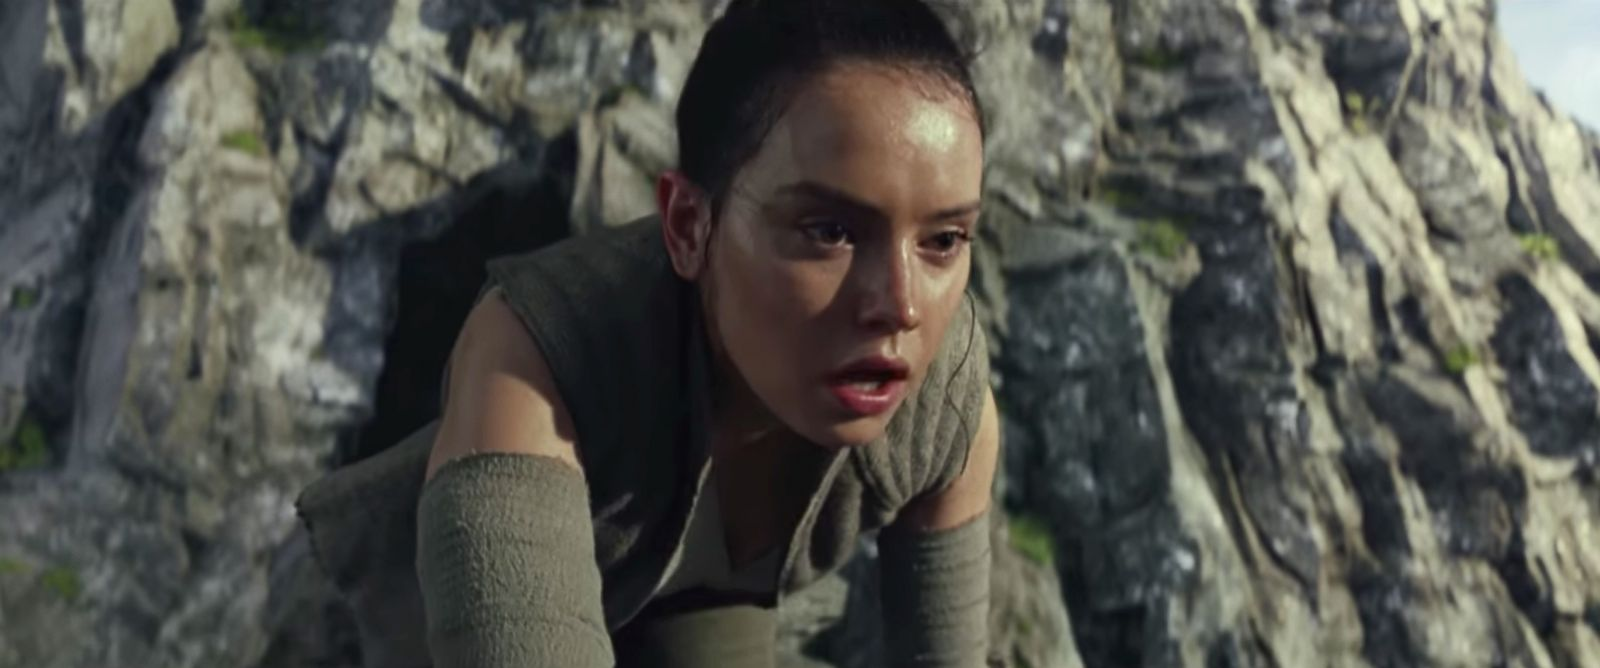 Trailer Pertama The Last Jedi Is a Blast from the Past